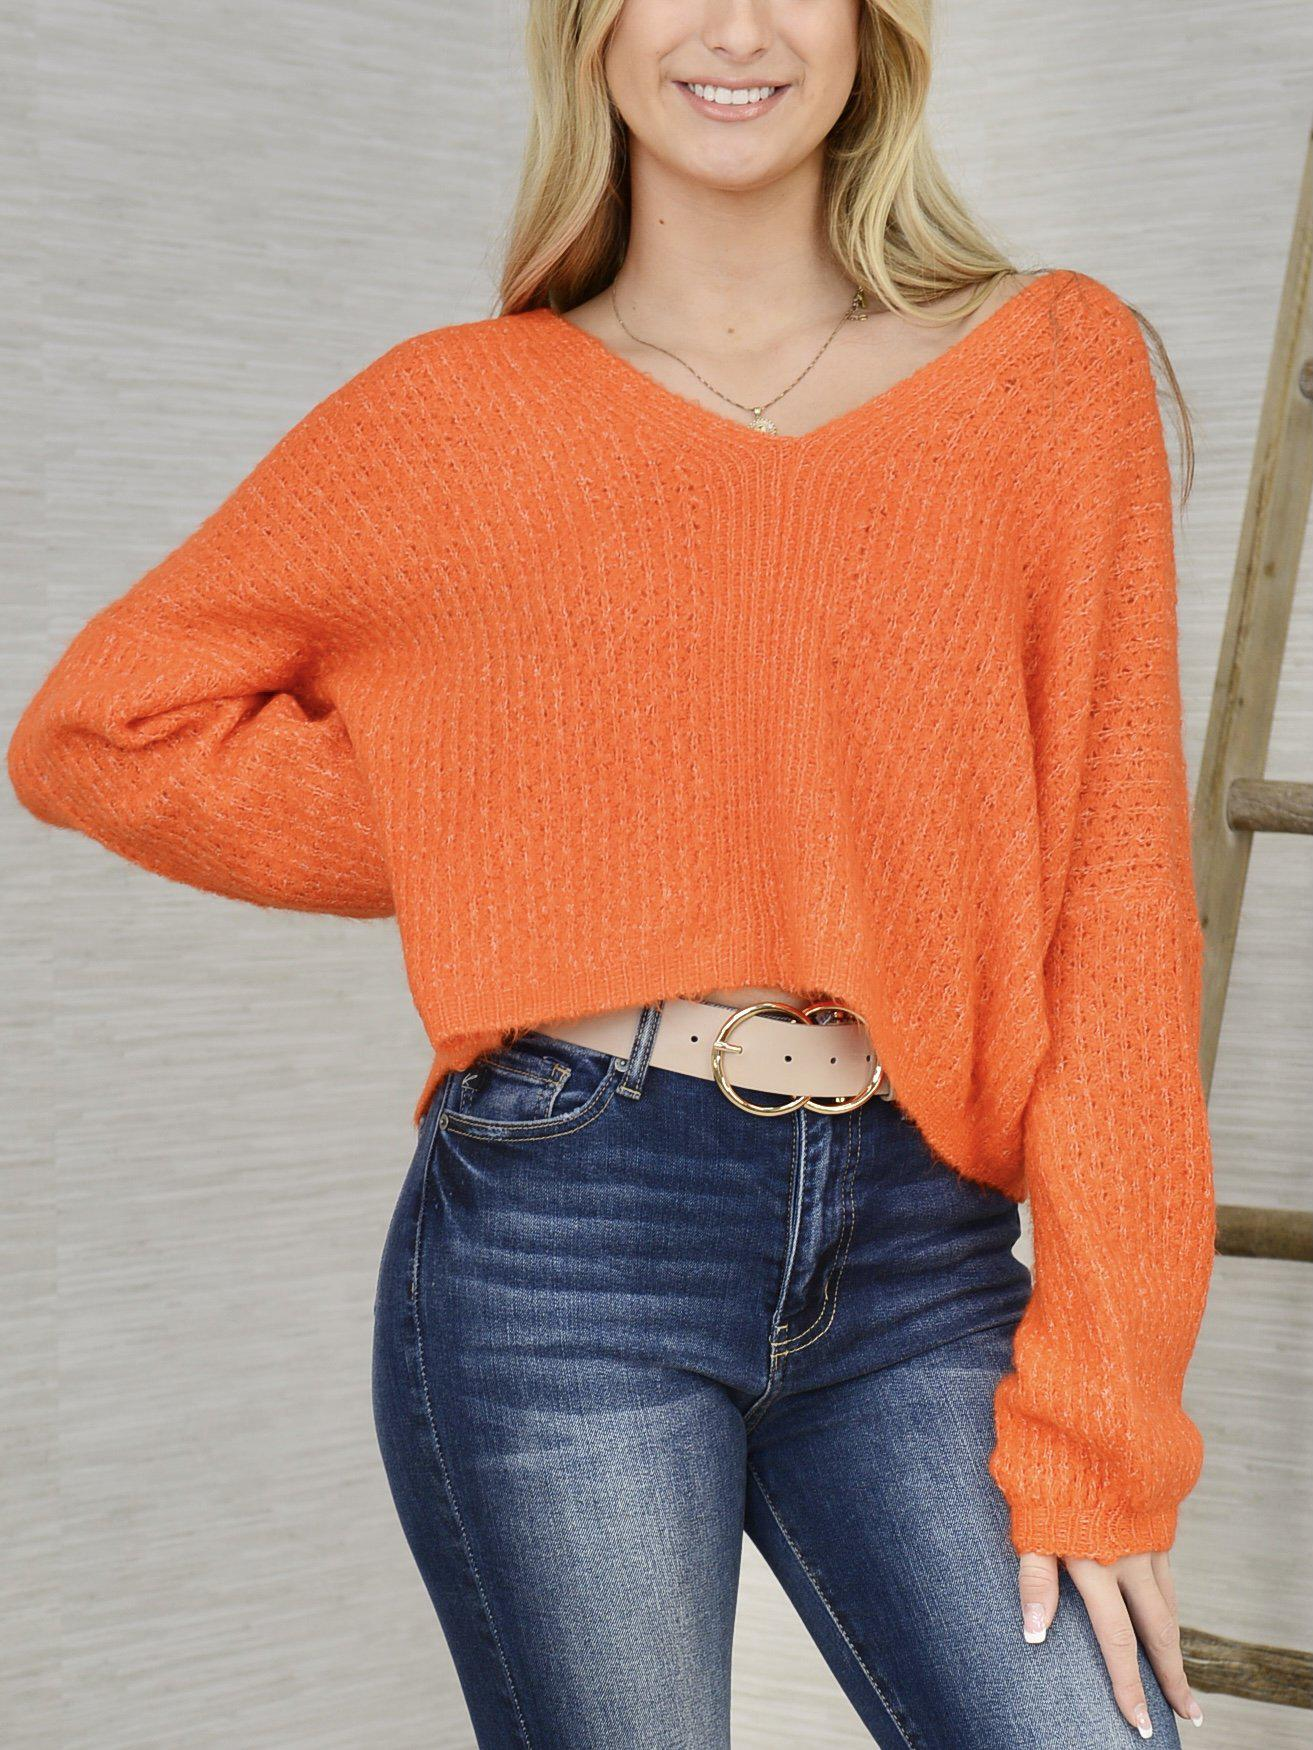 Brighter Days Sweater-Women's -New Arrivals-Runway Seven